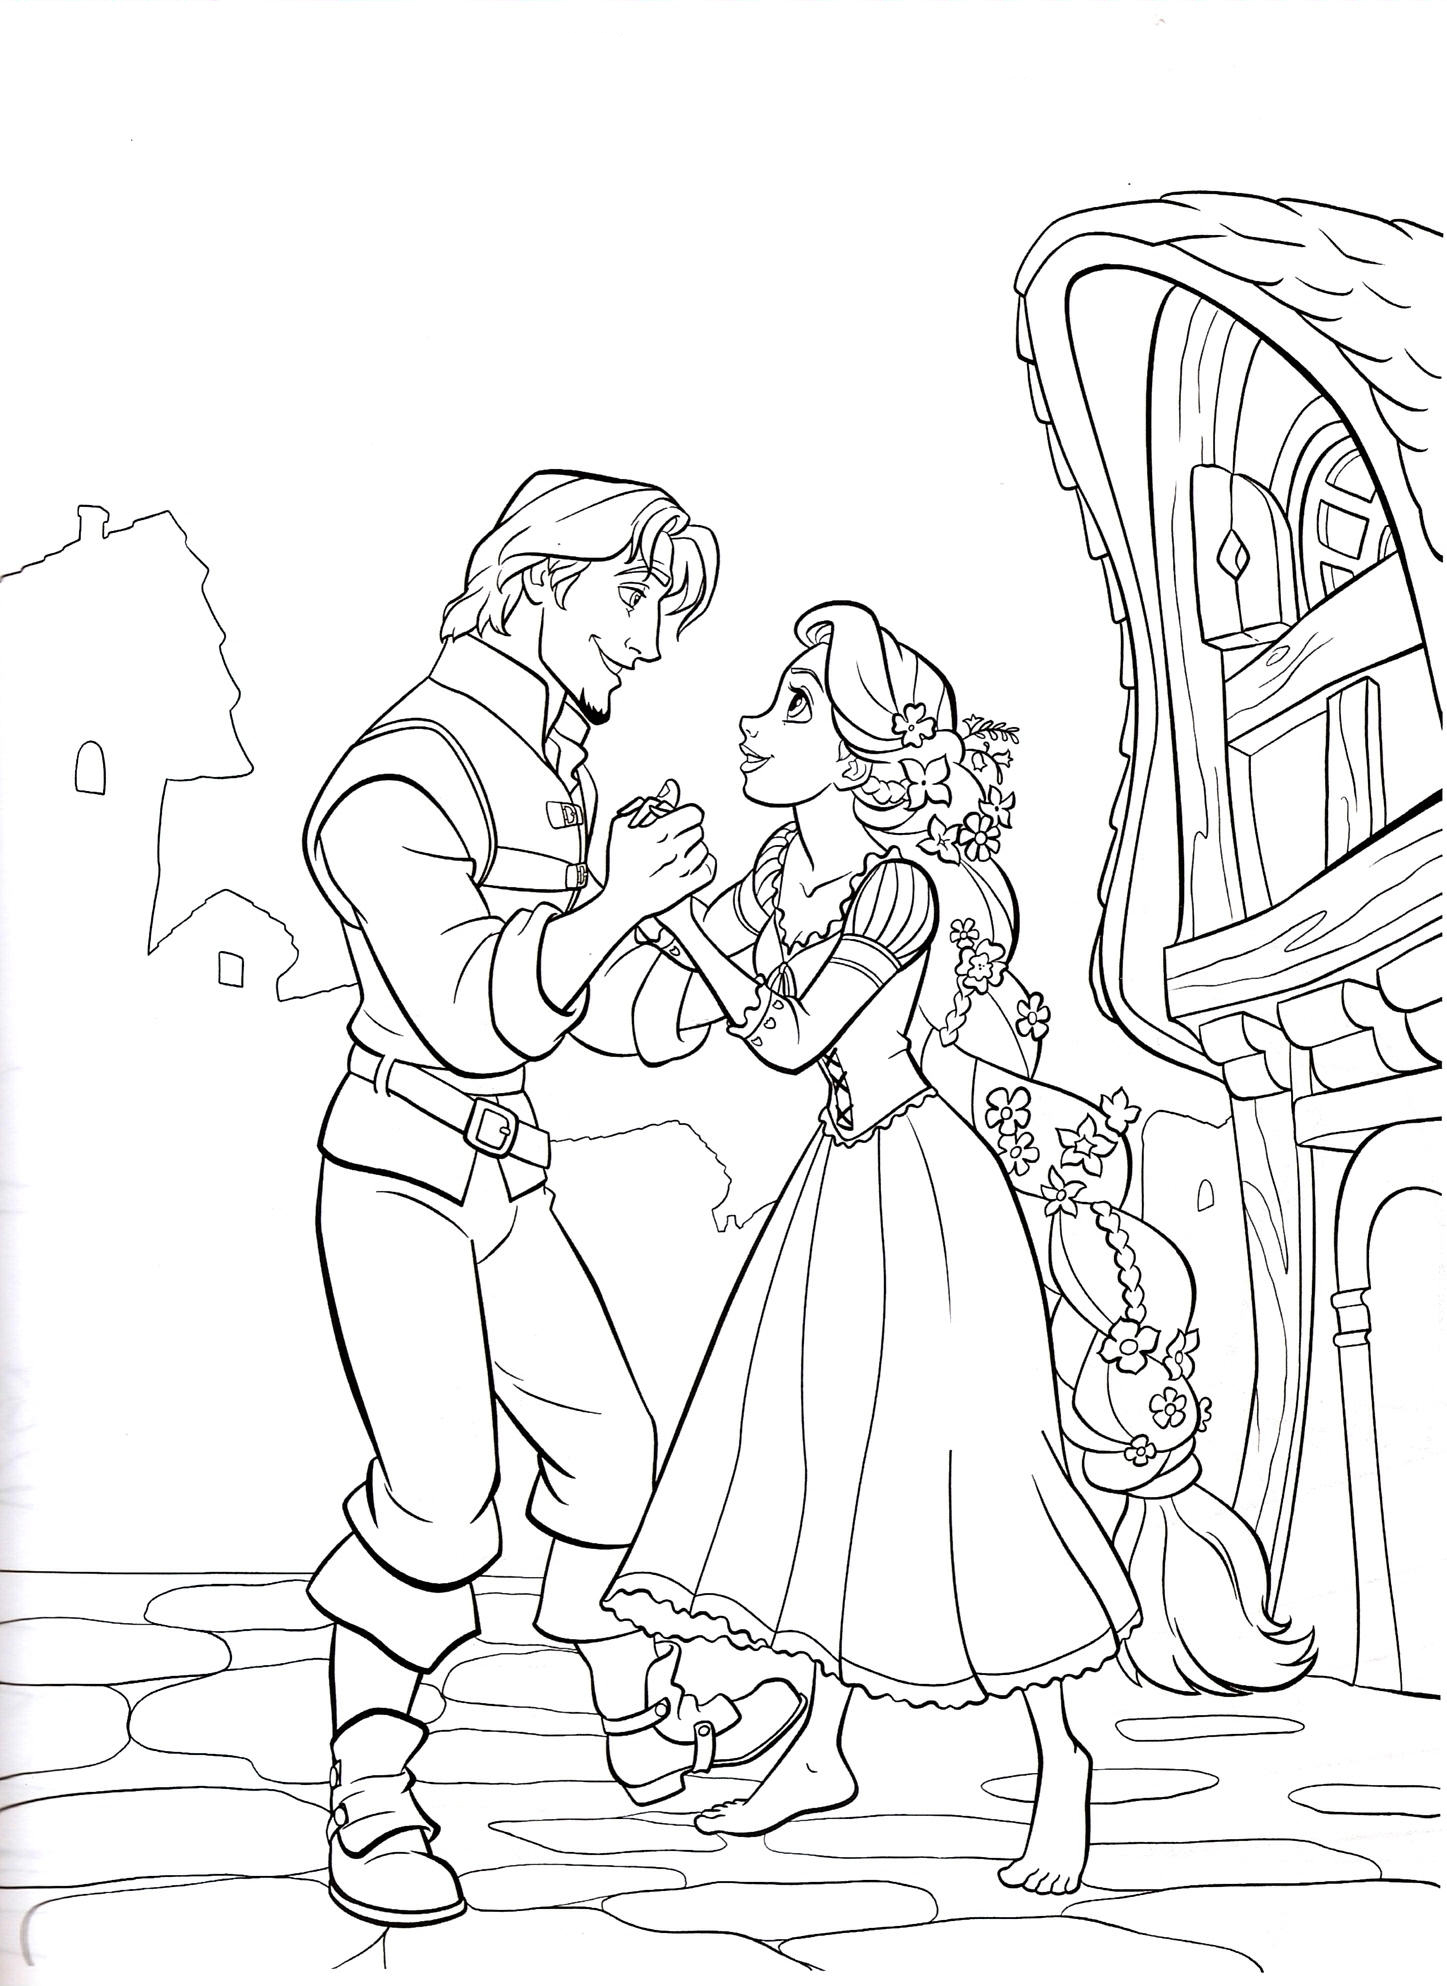 coloring pages top referrers - photo#15